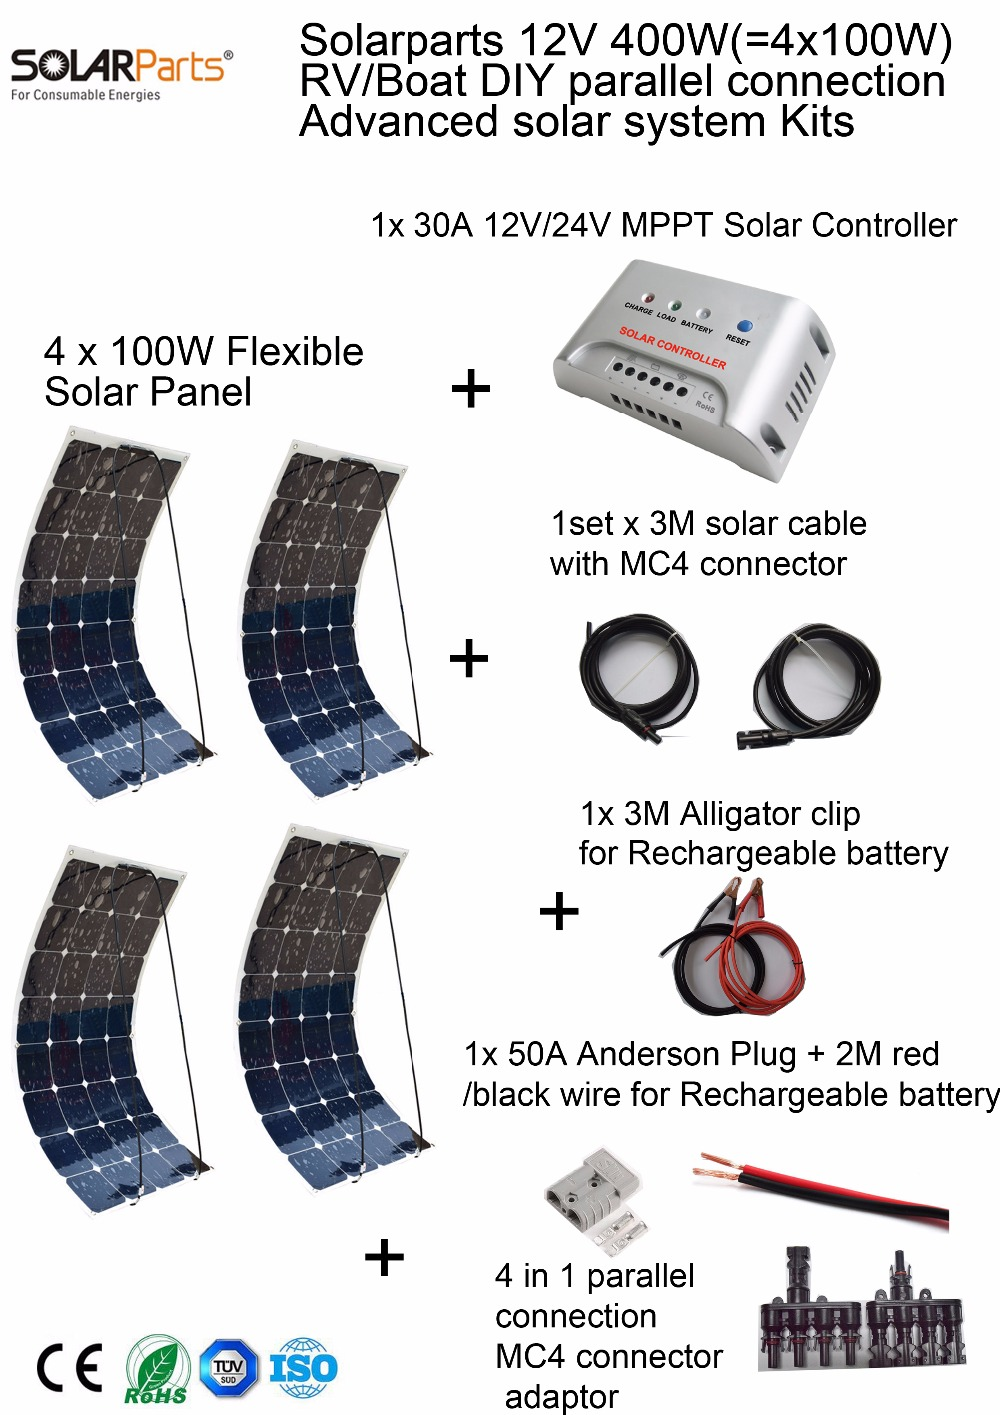 Solarparts 400W DIY RV/Marine Kits Solar System 4x100W flexible solar panel 12V,1 x30A MPPT solar controller set cables cheap. solarparts 100w diy rv marine kits solar system1x100w flexible solar panel 12v 1 x10a 12v 24v solar controller set cables cheap